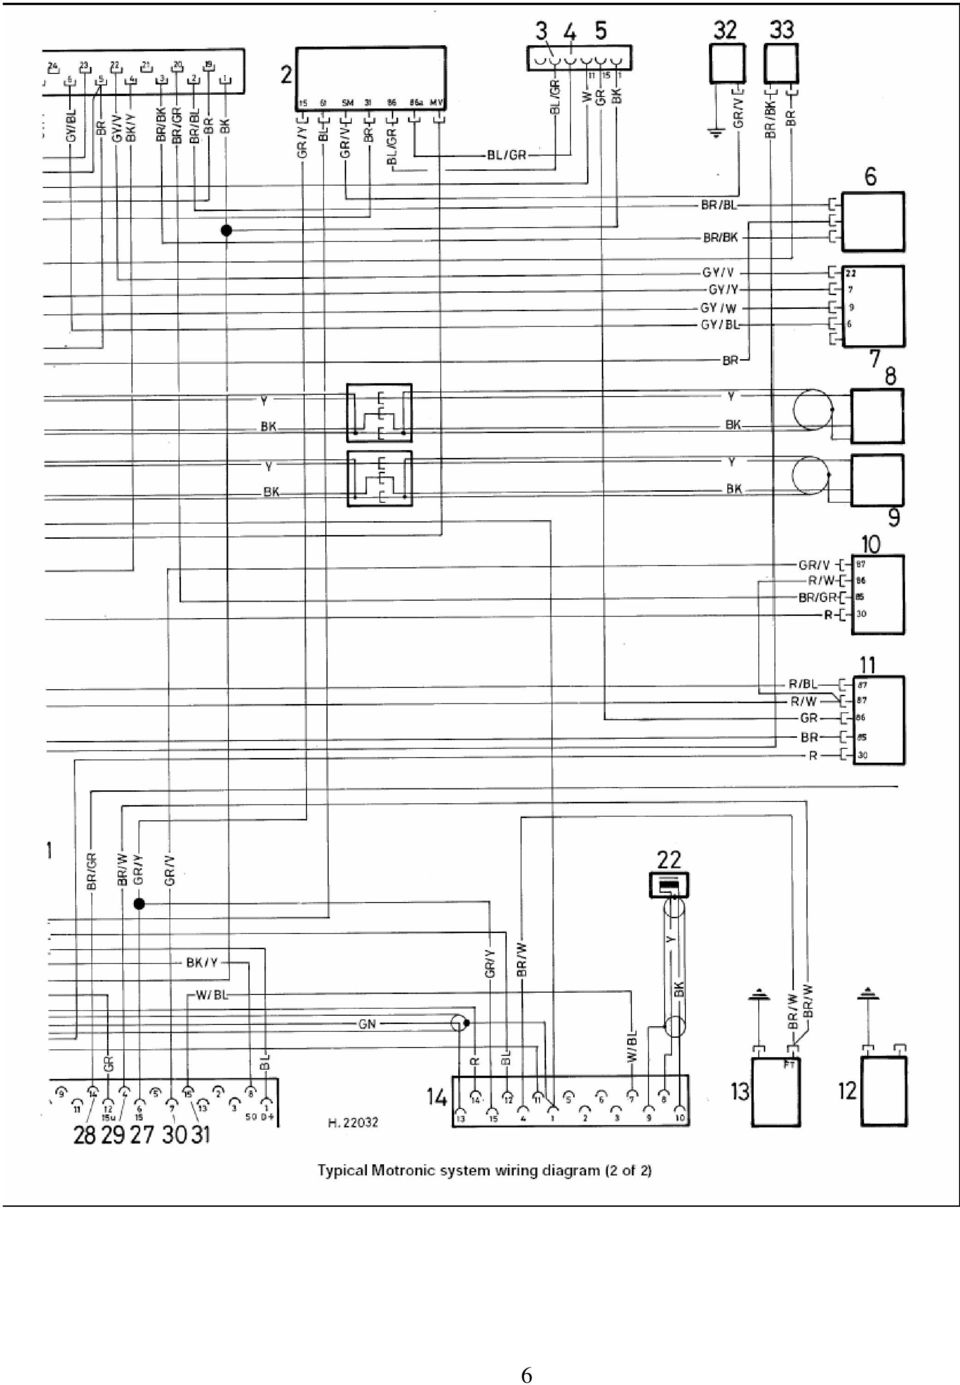 Colour Codes Diagrams Index Pdf Bmw F20 Fuse Box 7 Key To Motronic Engine Control System Wiring Diagram Picture 1 2 Electronic Unit Ecu 18 Distributor Speed Relay 19